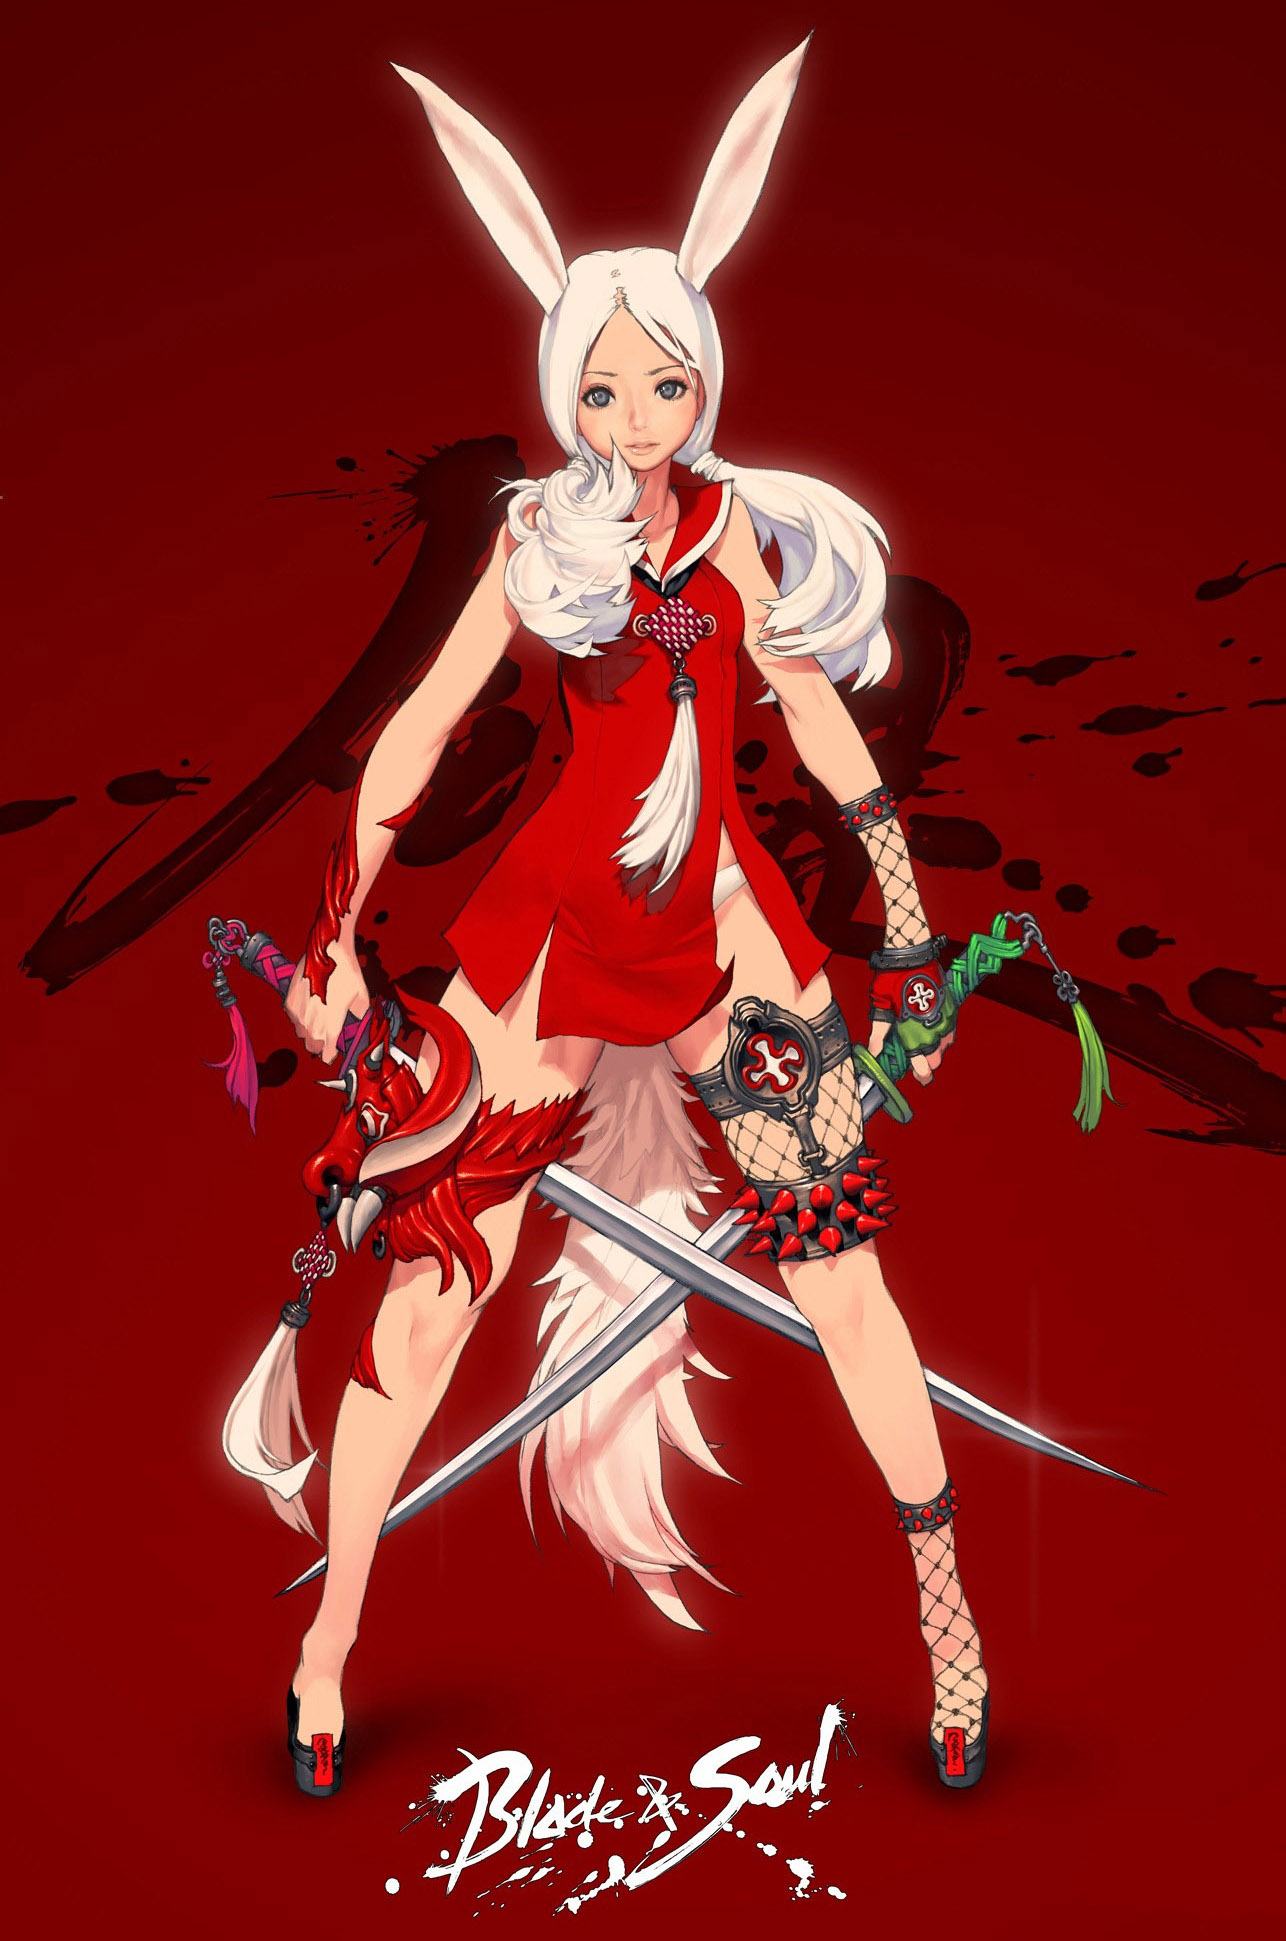 Blade N Soul Anime Characters : Blade soul poster anime art